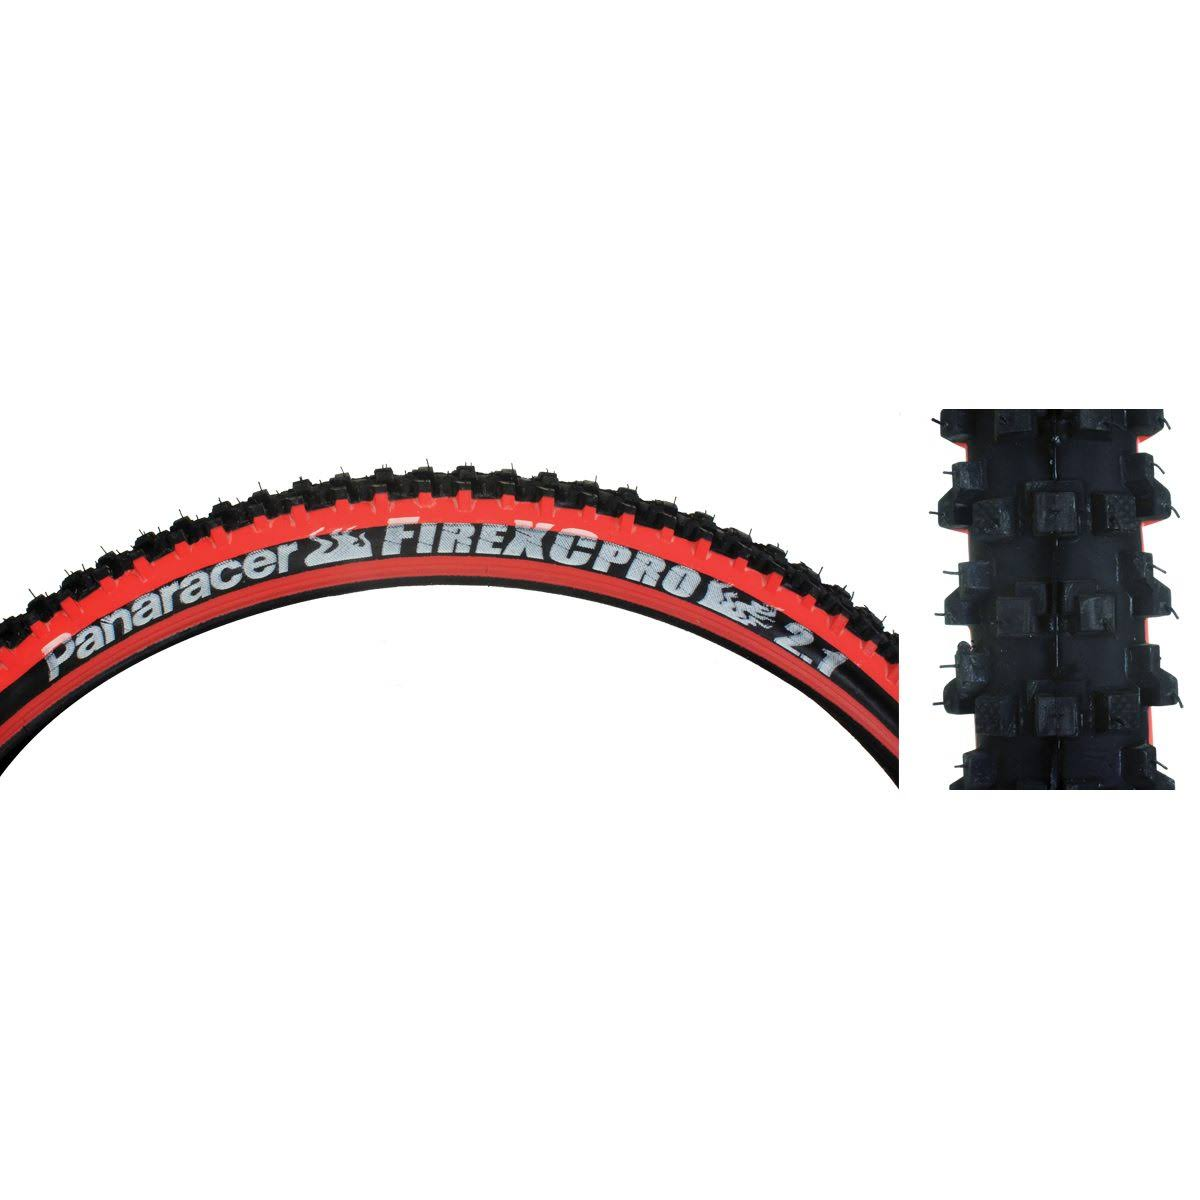 Panaracer Fire XC Wire MTB Tire - 26x2.1, Black/Red, 700g